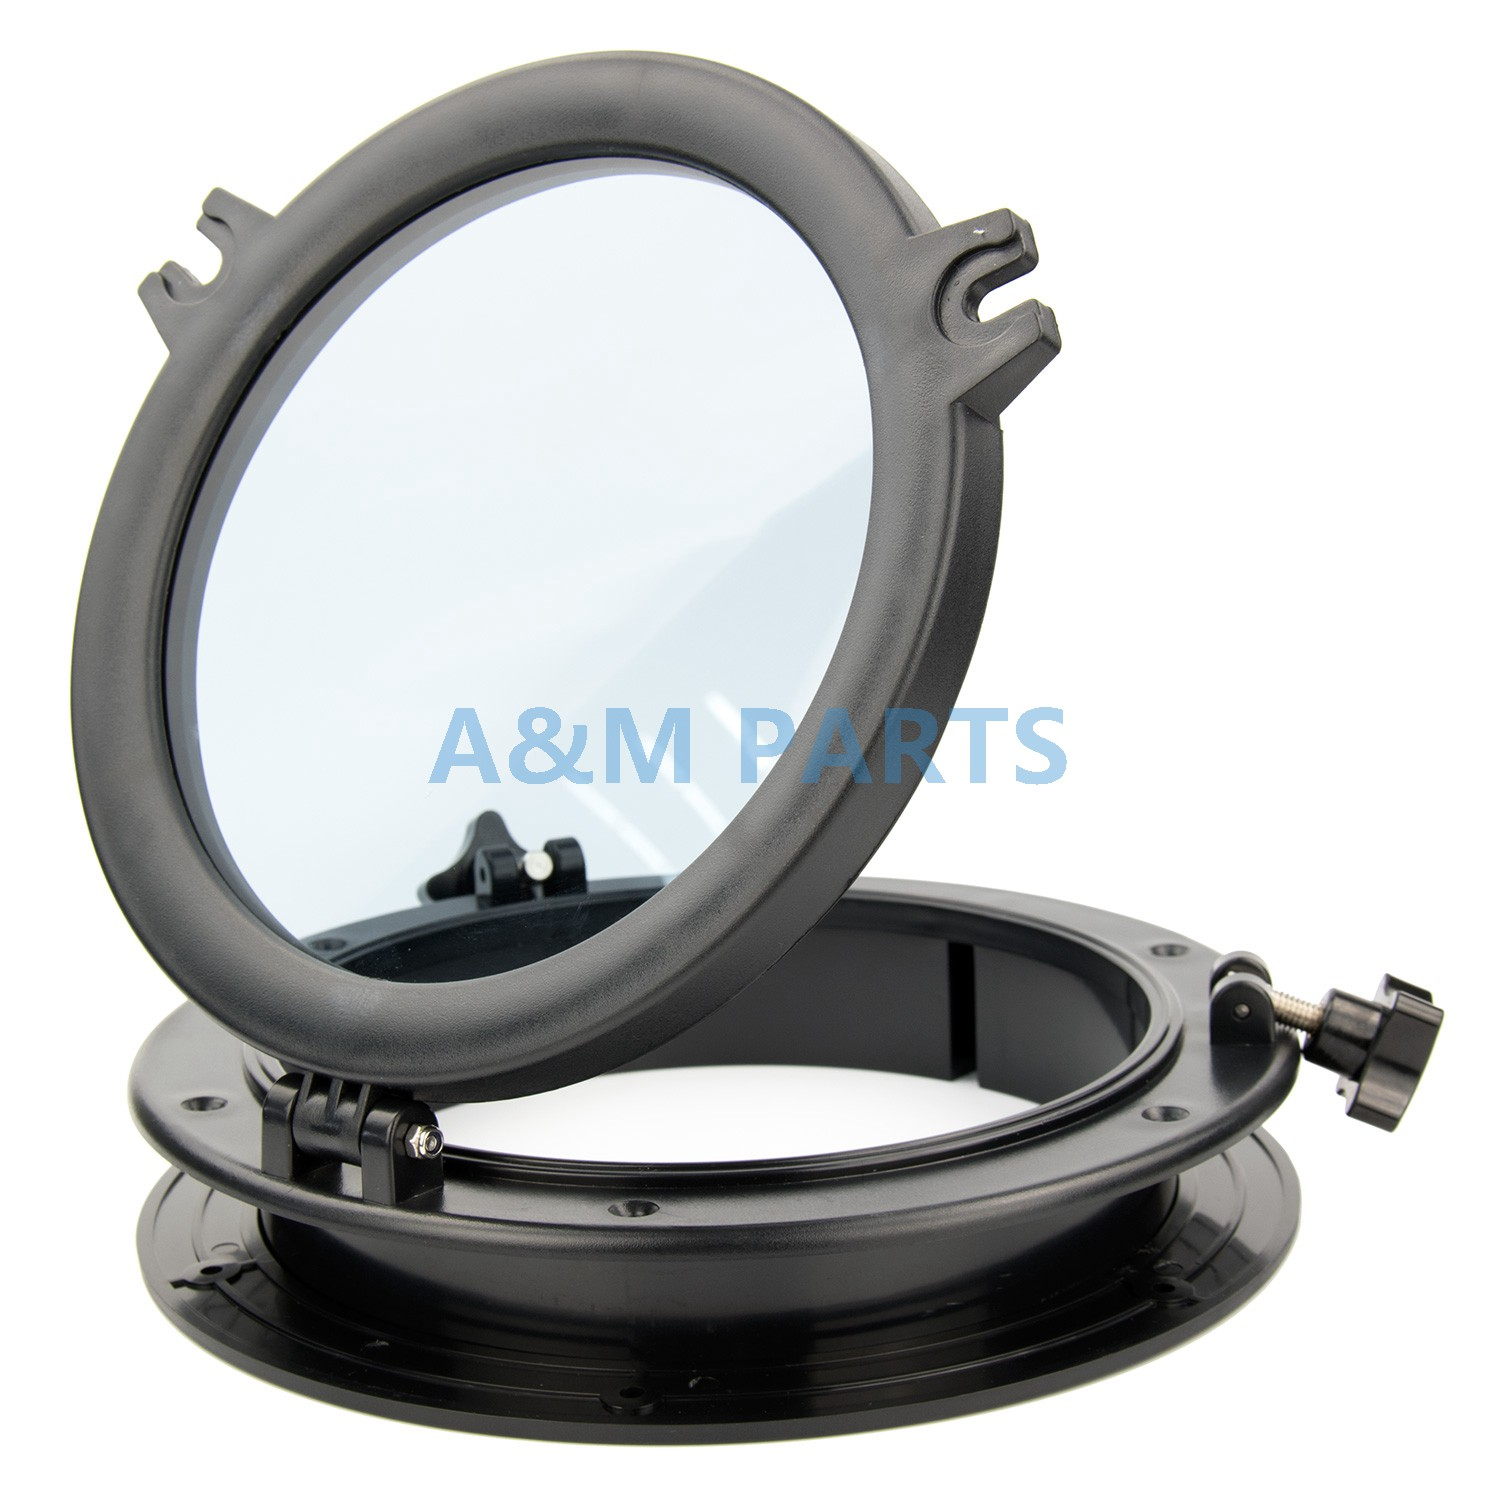 10'' Marine <font><b>Boat</b></font> RV Porthole Plastic Round <font><b>Hatches</b></font> Port Lights Windows Black image